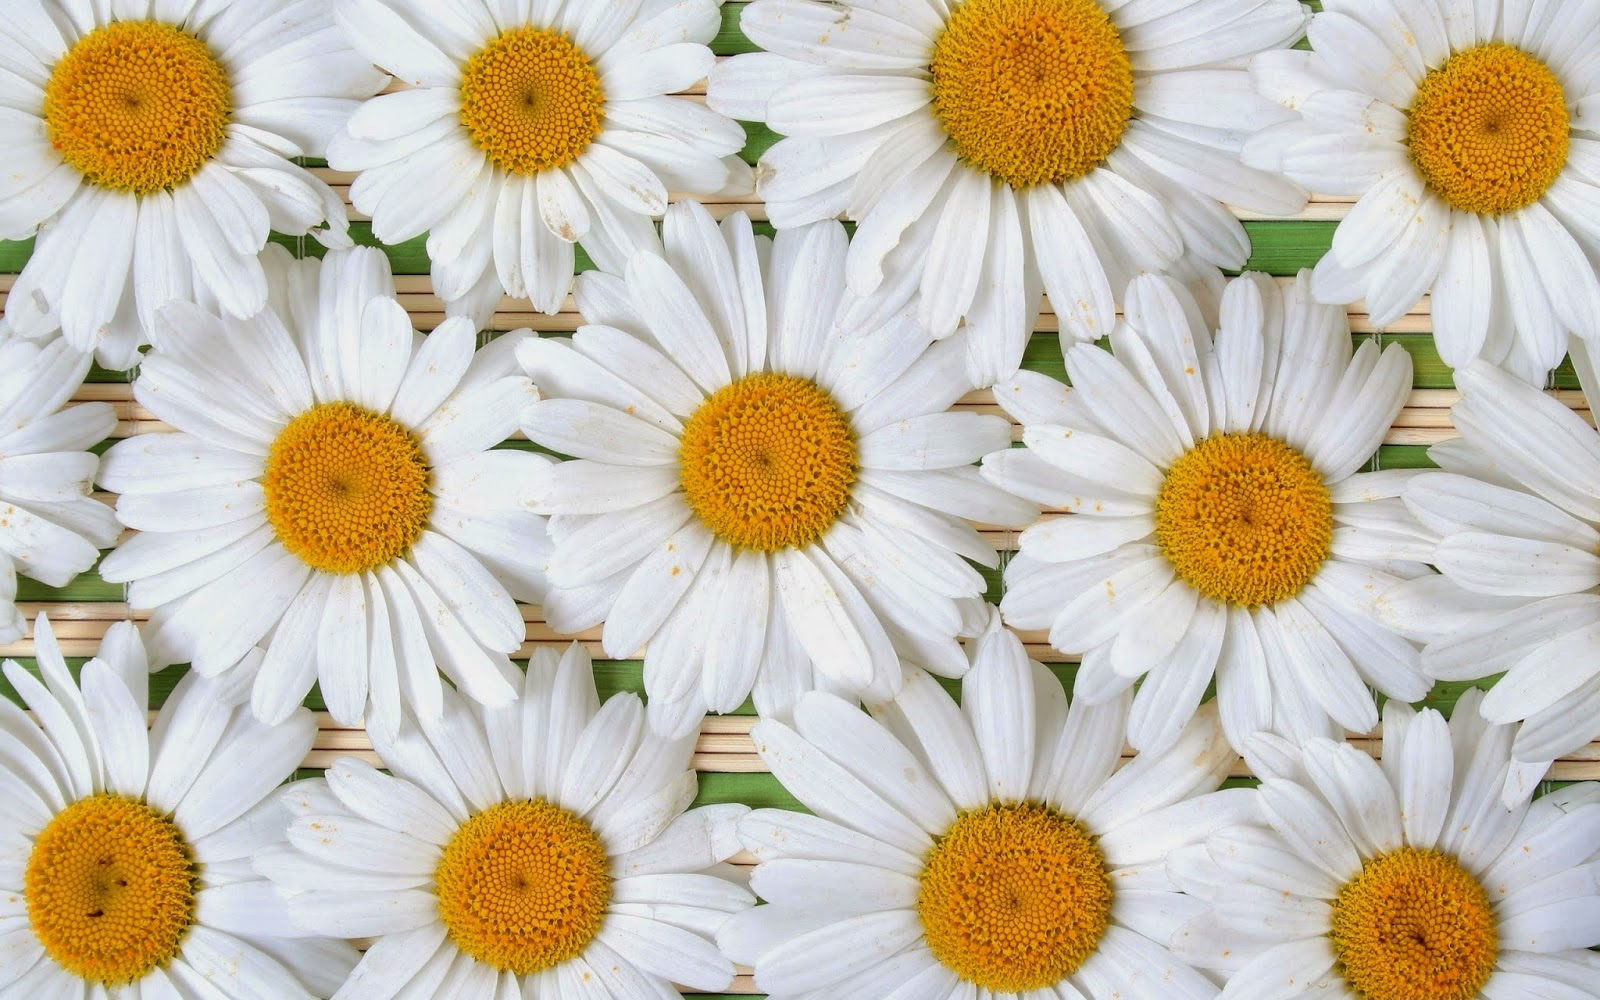 Daisy-flower-decorations-arrangements-picture.jpg